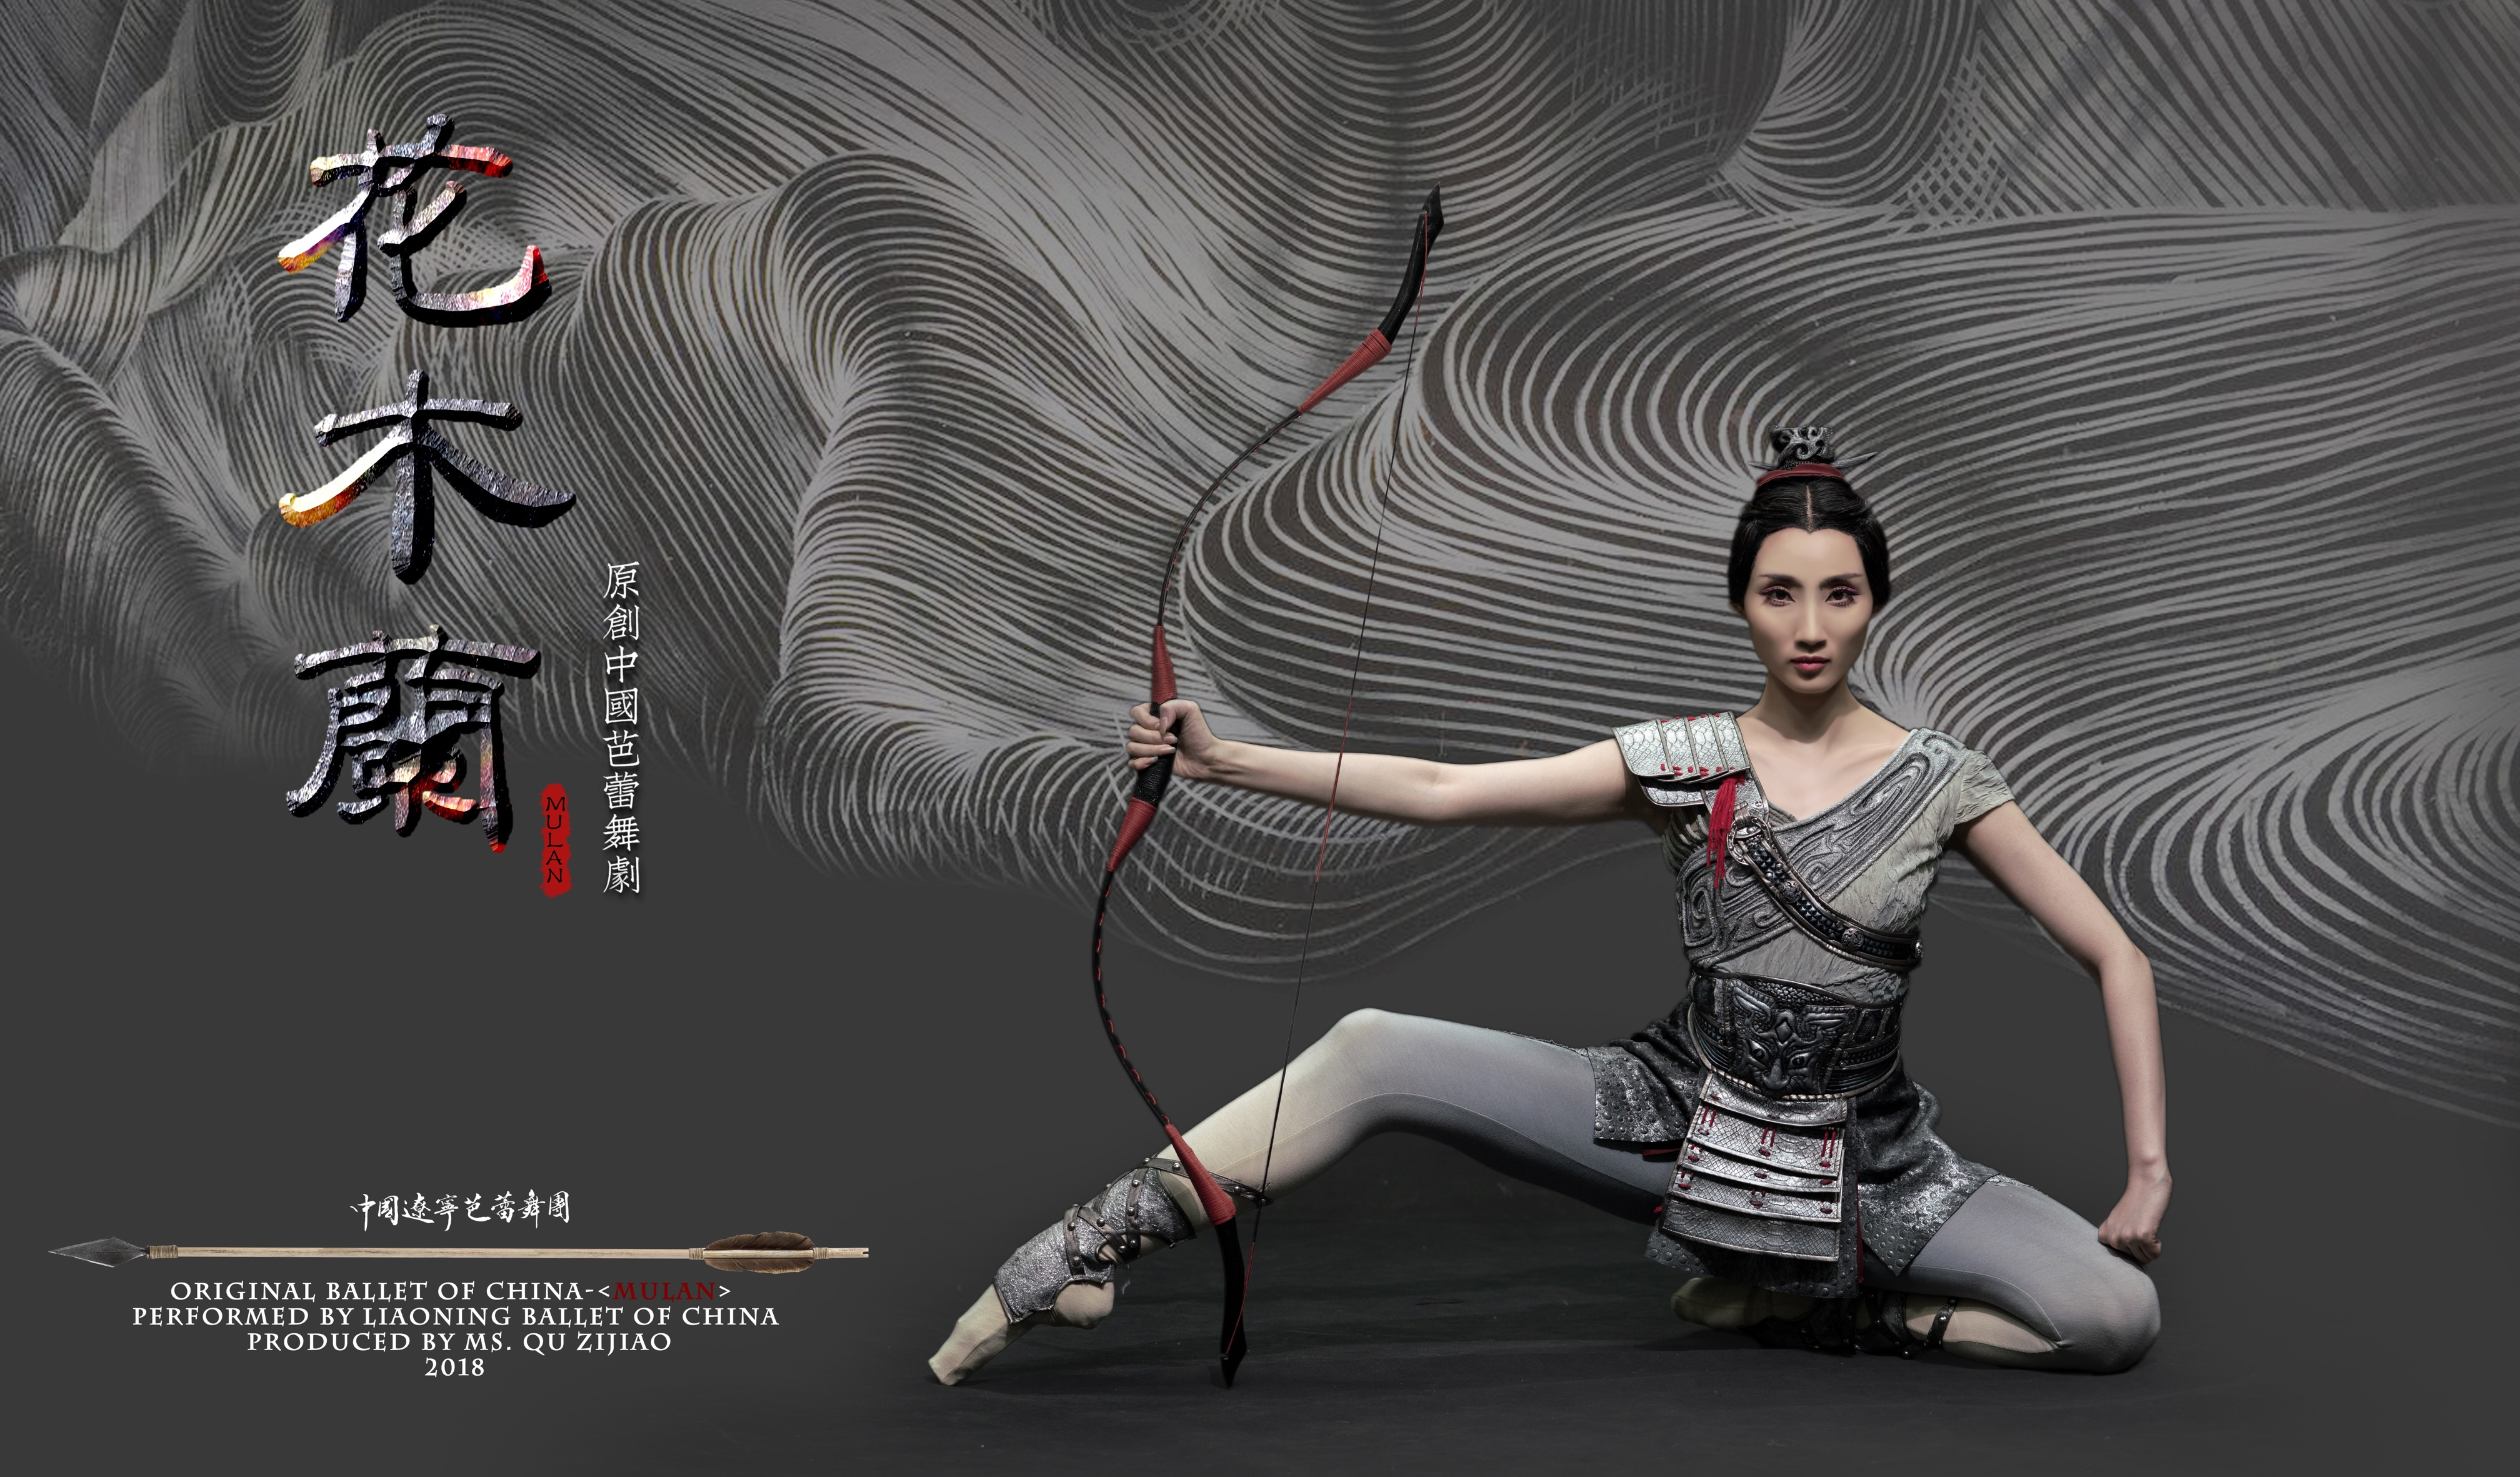 Liaoning Ballet of China